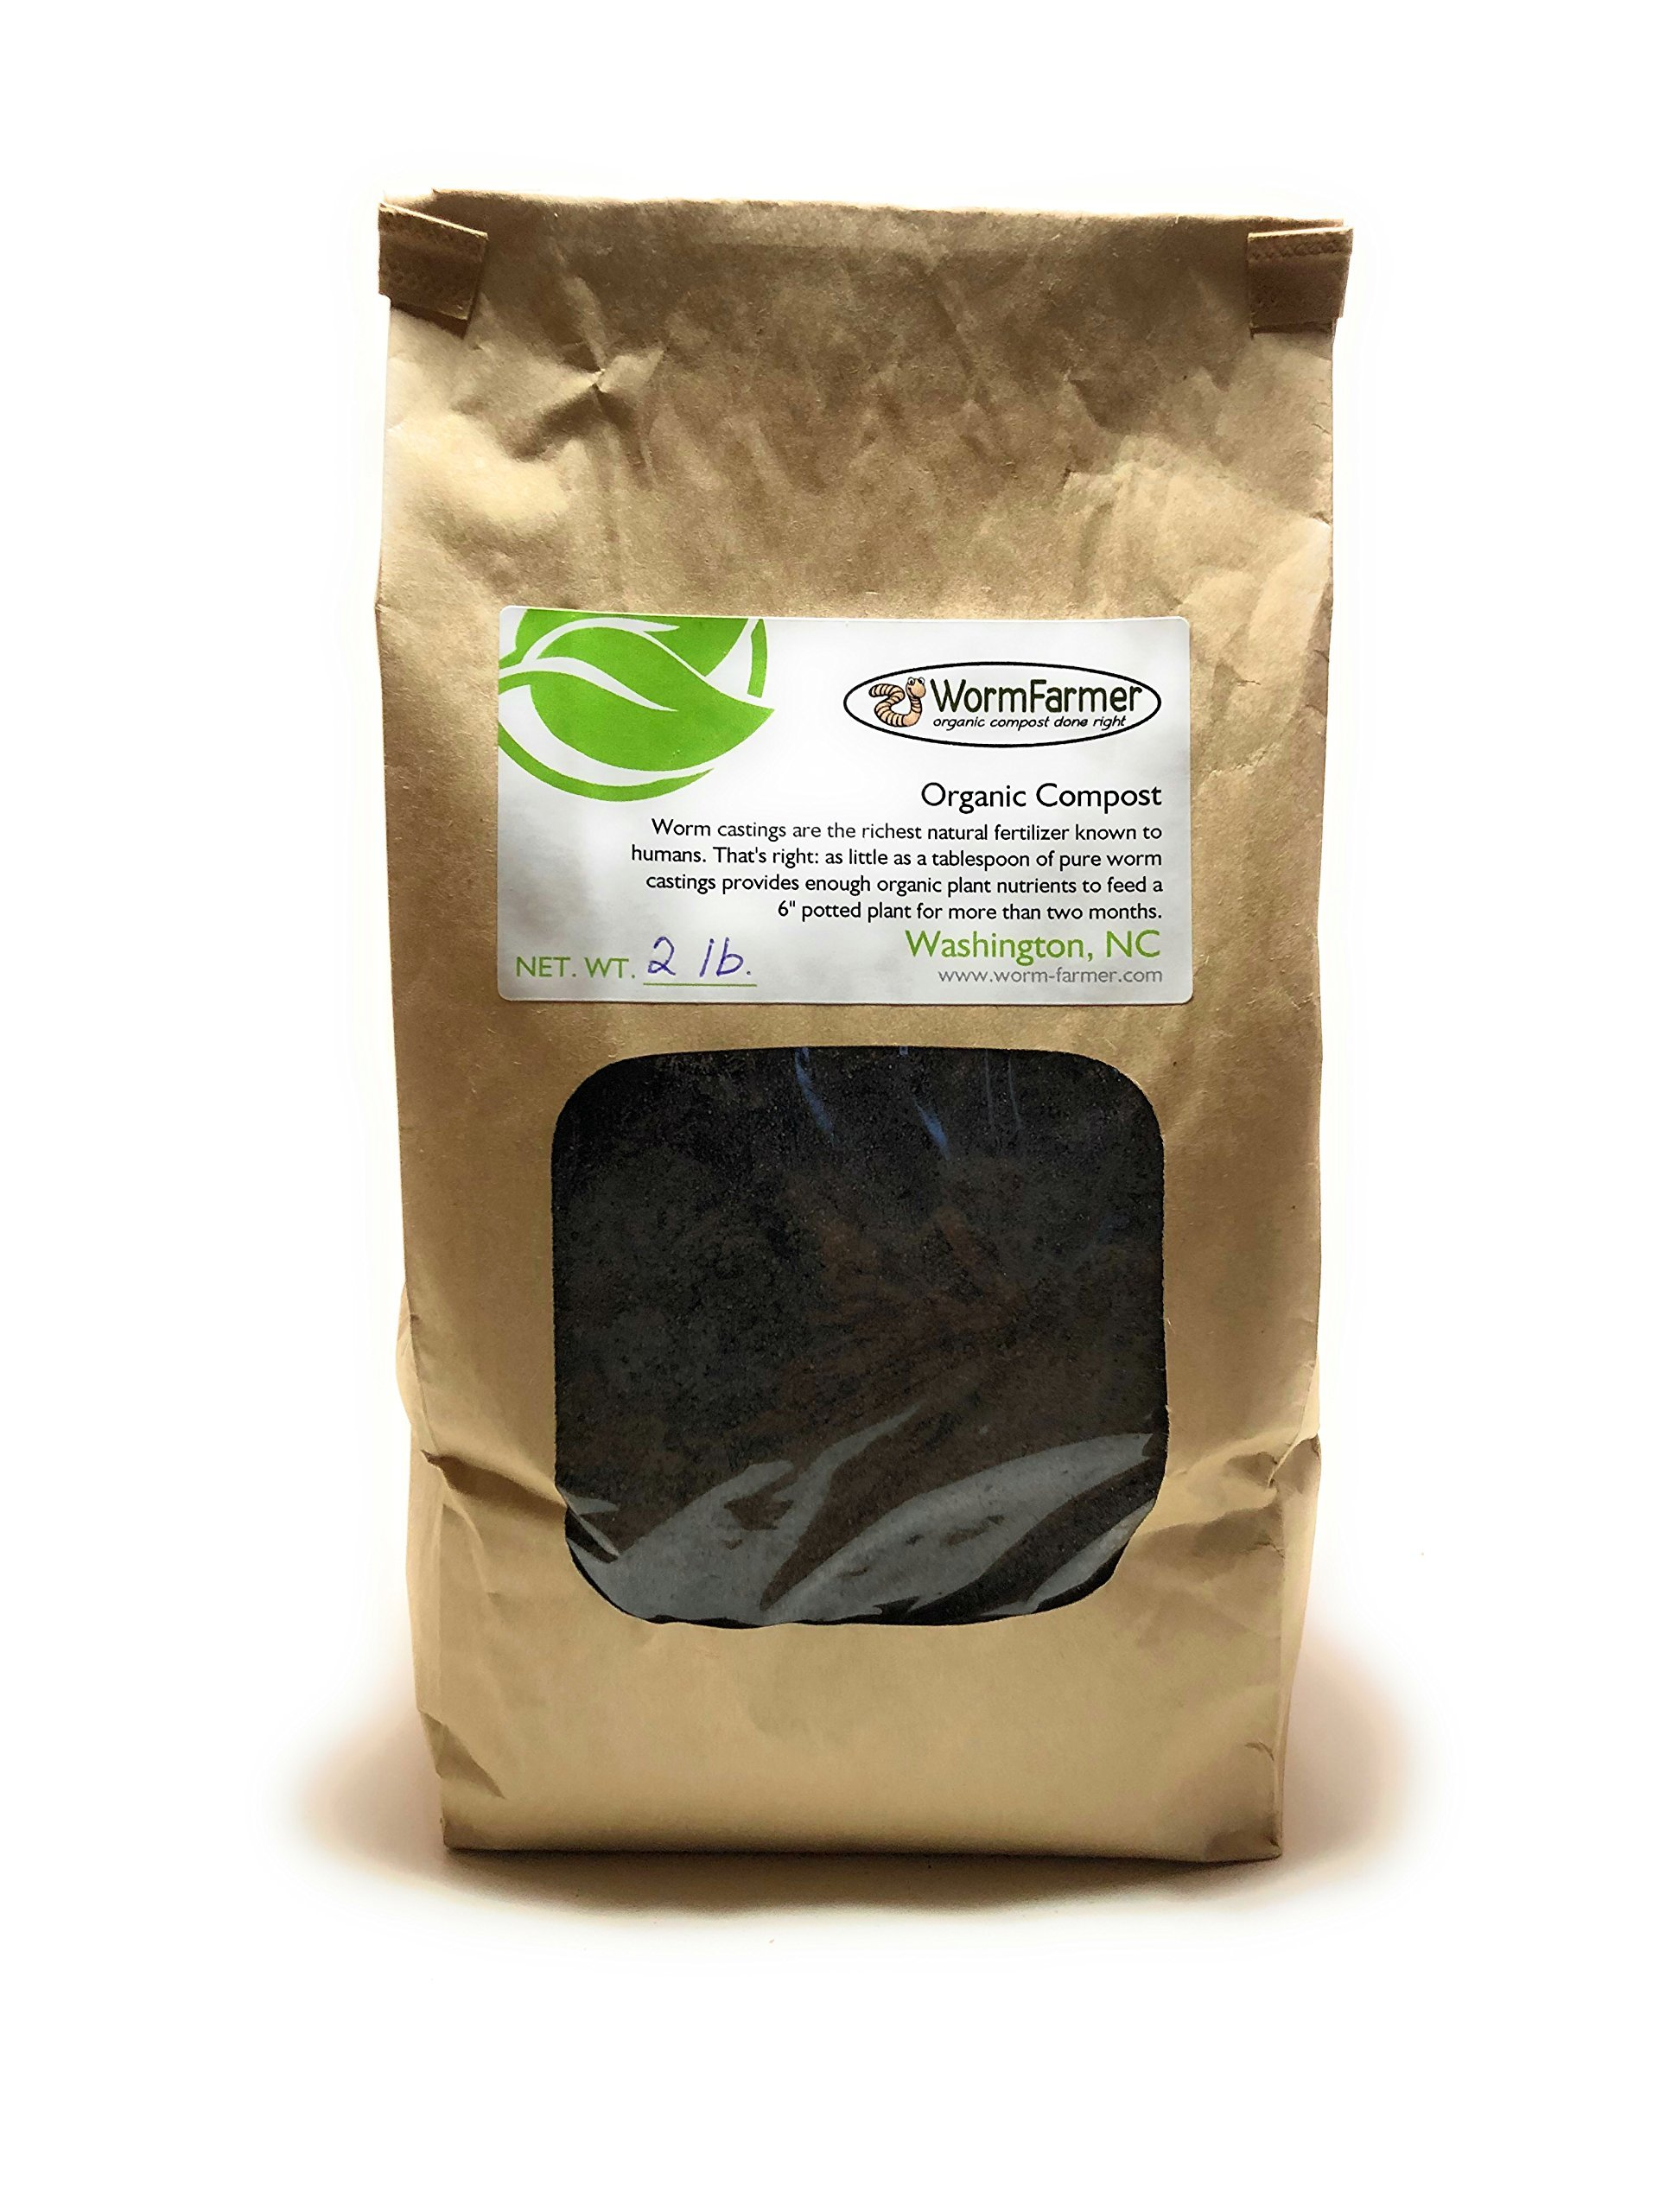 Worm Farmer Organic Compost Worm Castings Vermicompost 2 lb. Great for Plants Flowers Vegetables Gardens by WormFarmer Organic Compost (Image #1)